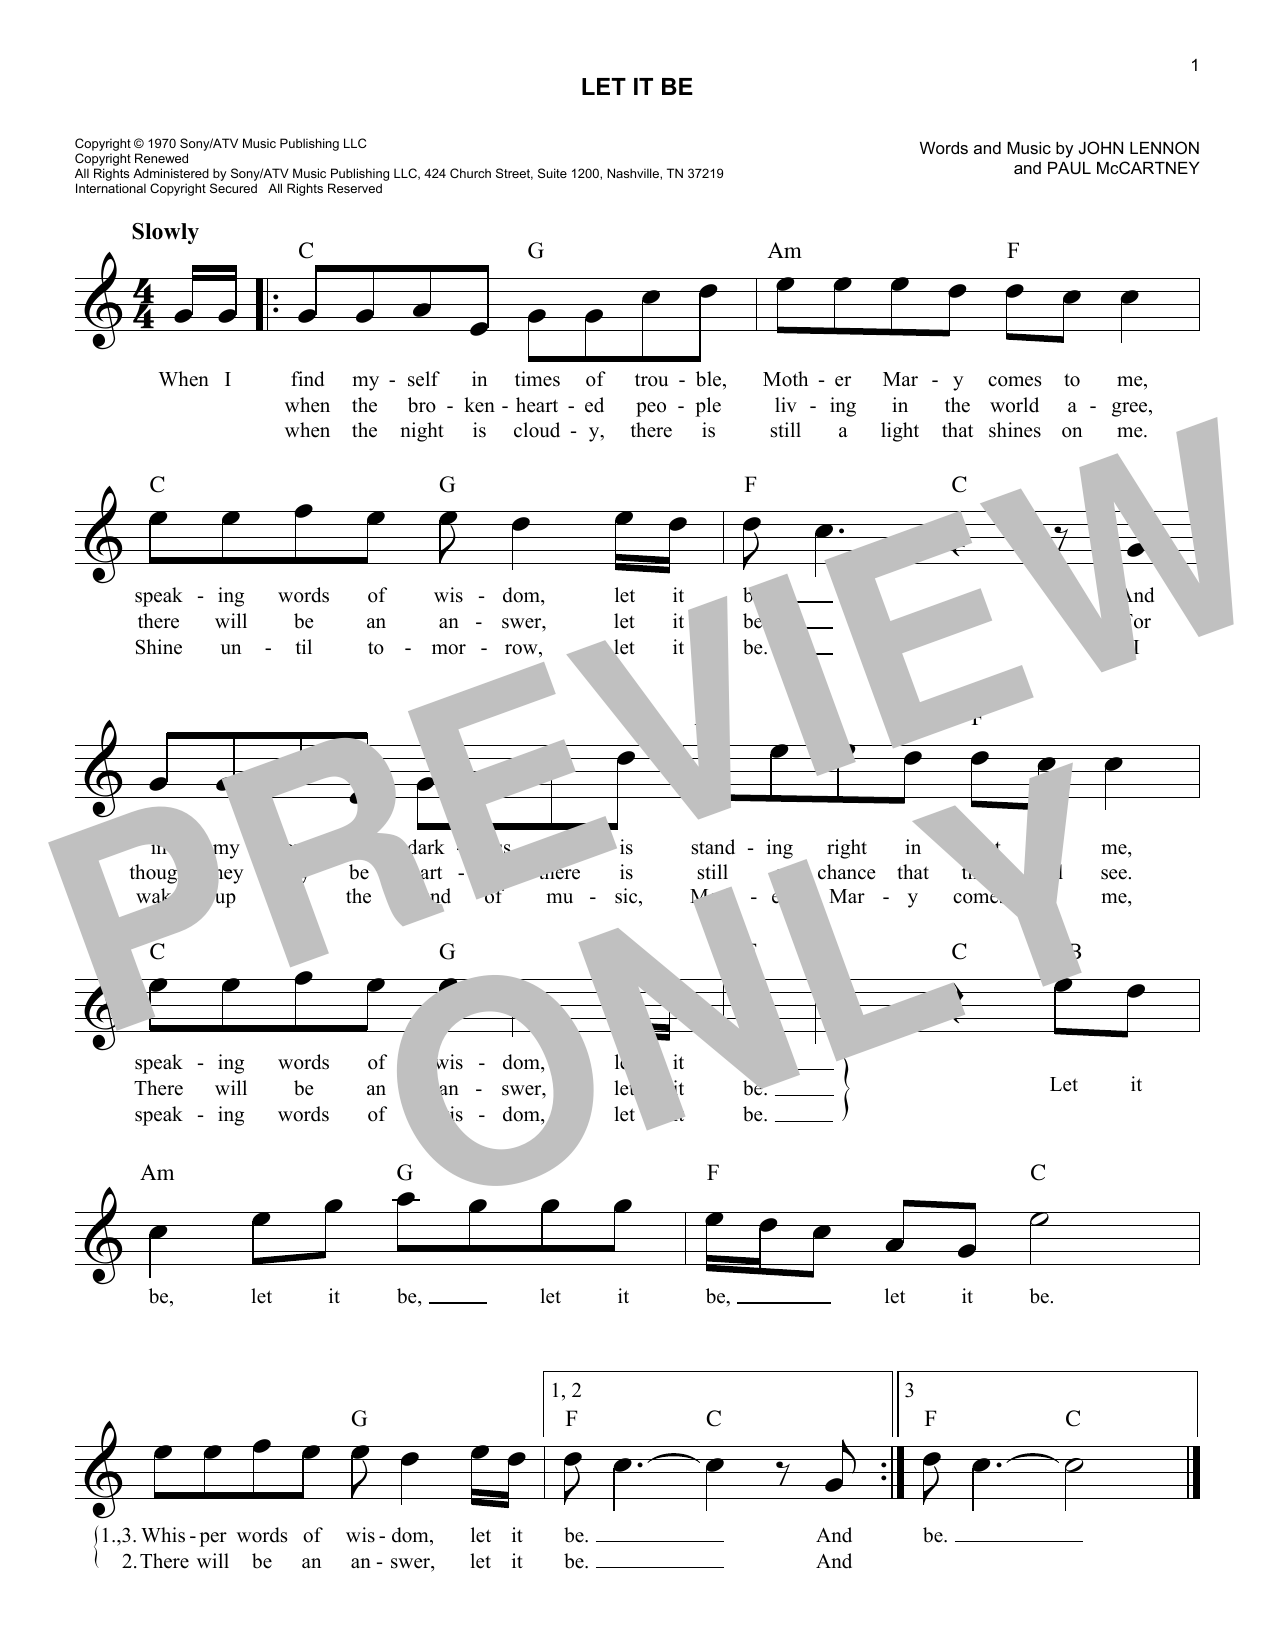 Let it be chords by the beatles melody line lyrics chords let it be sheet music hexwebz Images